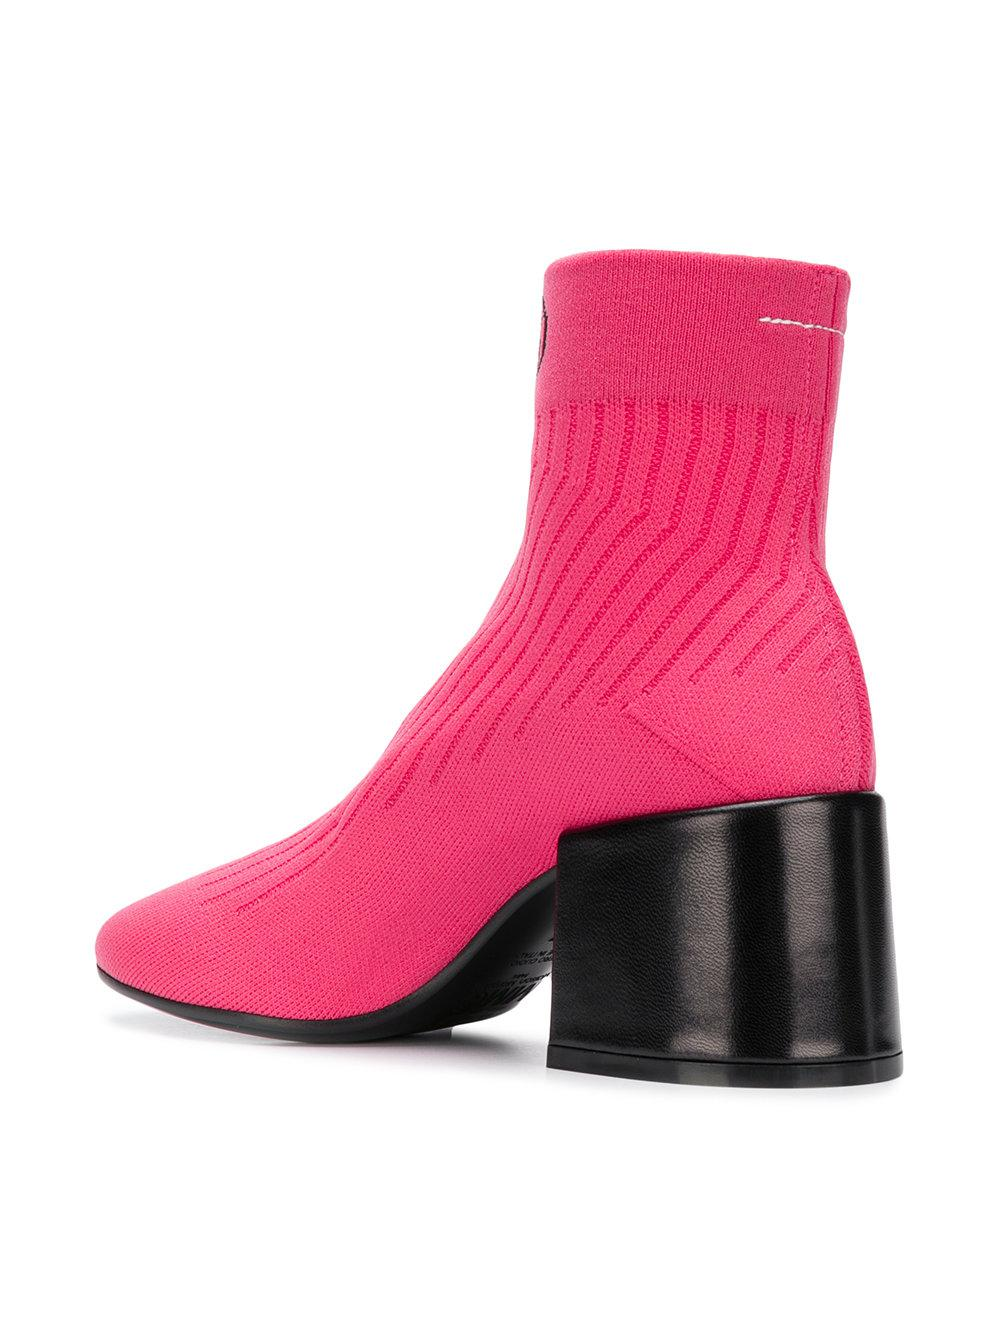 Newest Low Price Cheap Price logo sock boots - Pink & Purple Maison Martin Margiela z3JrSz